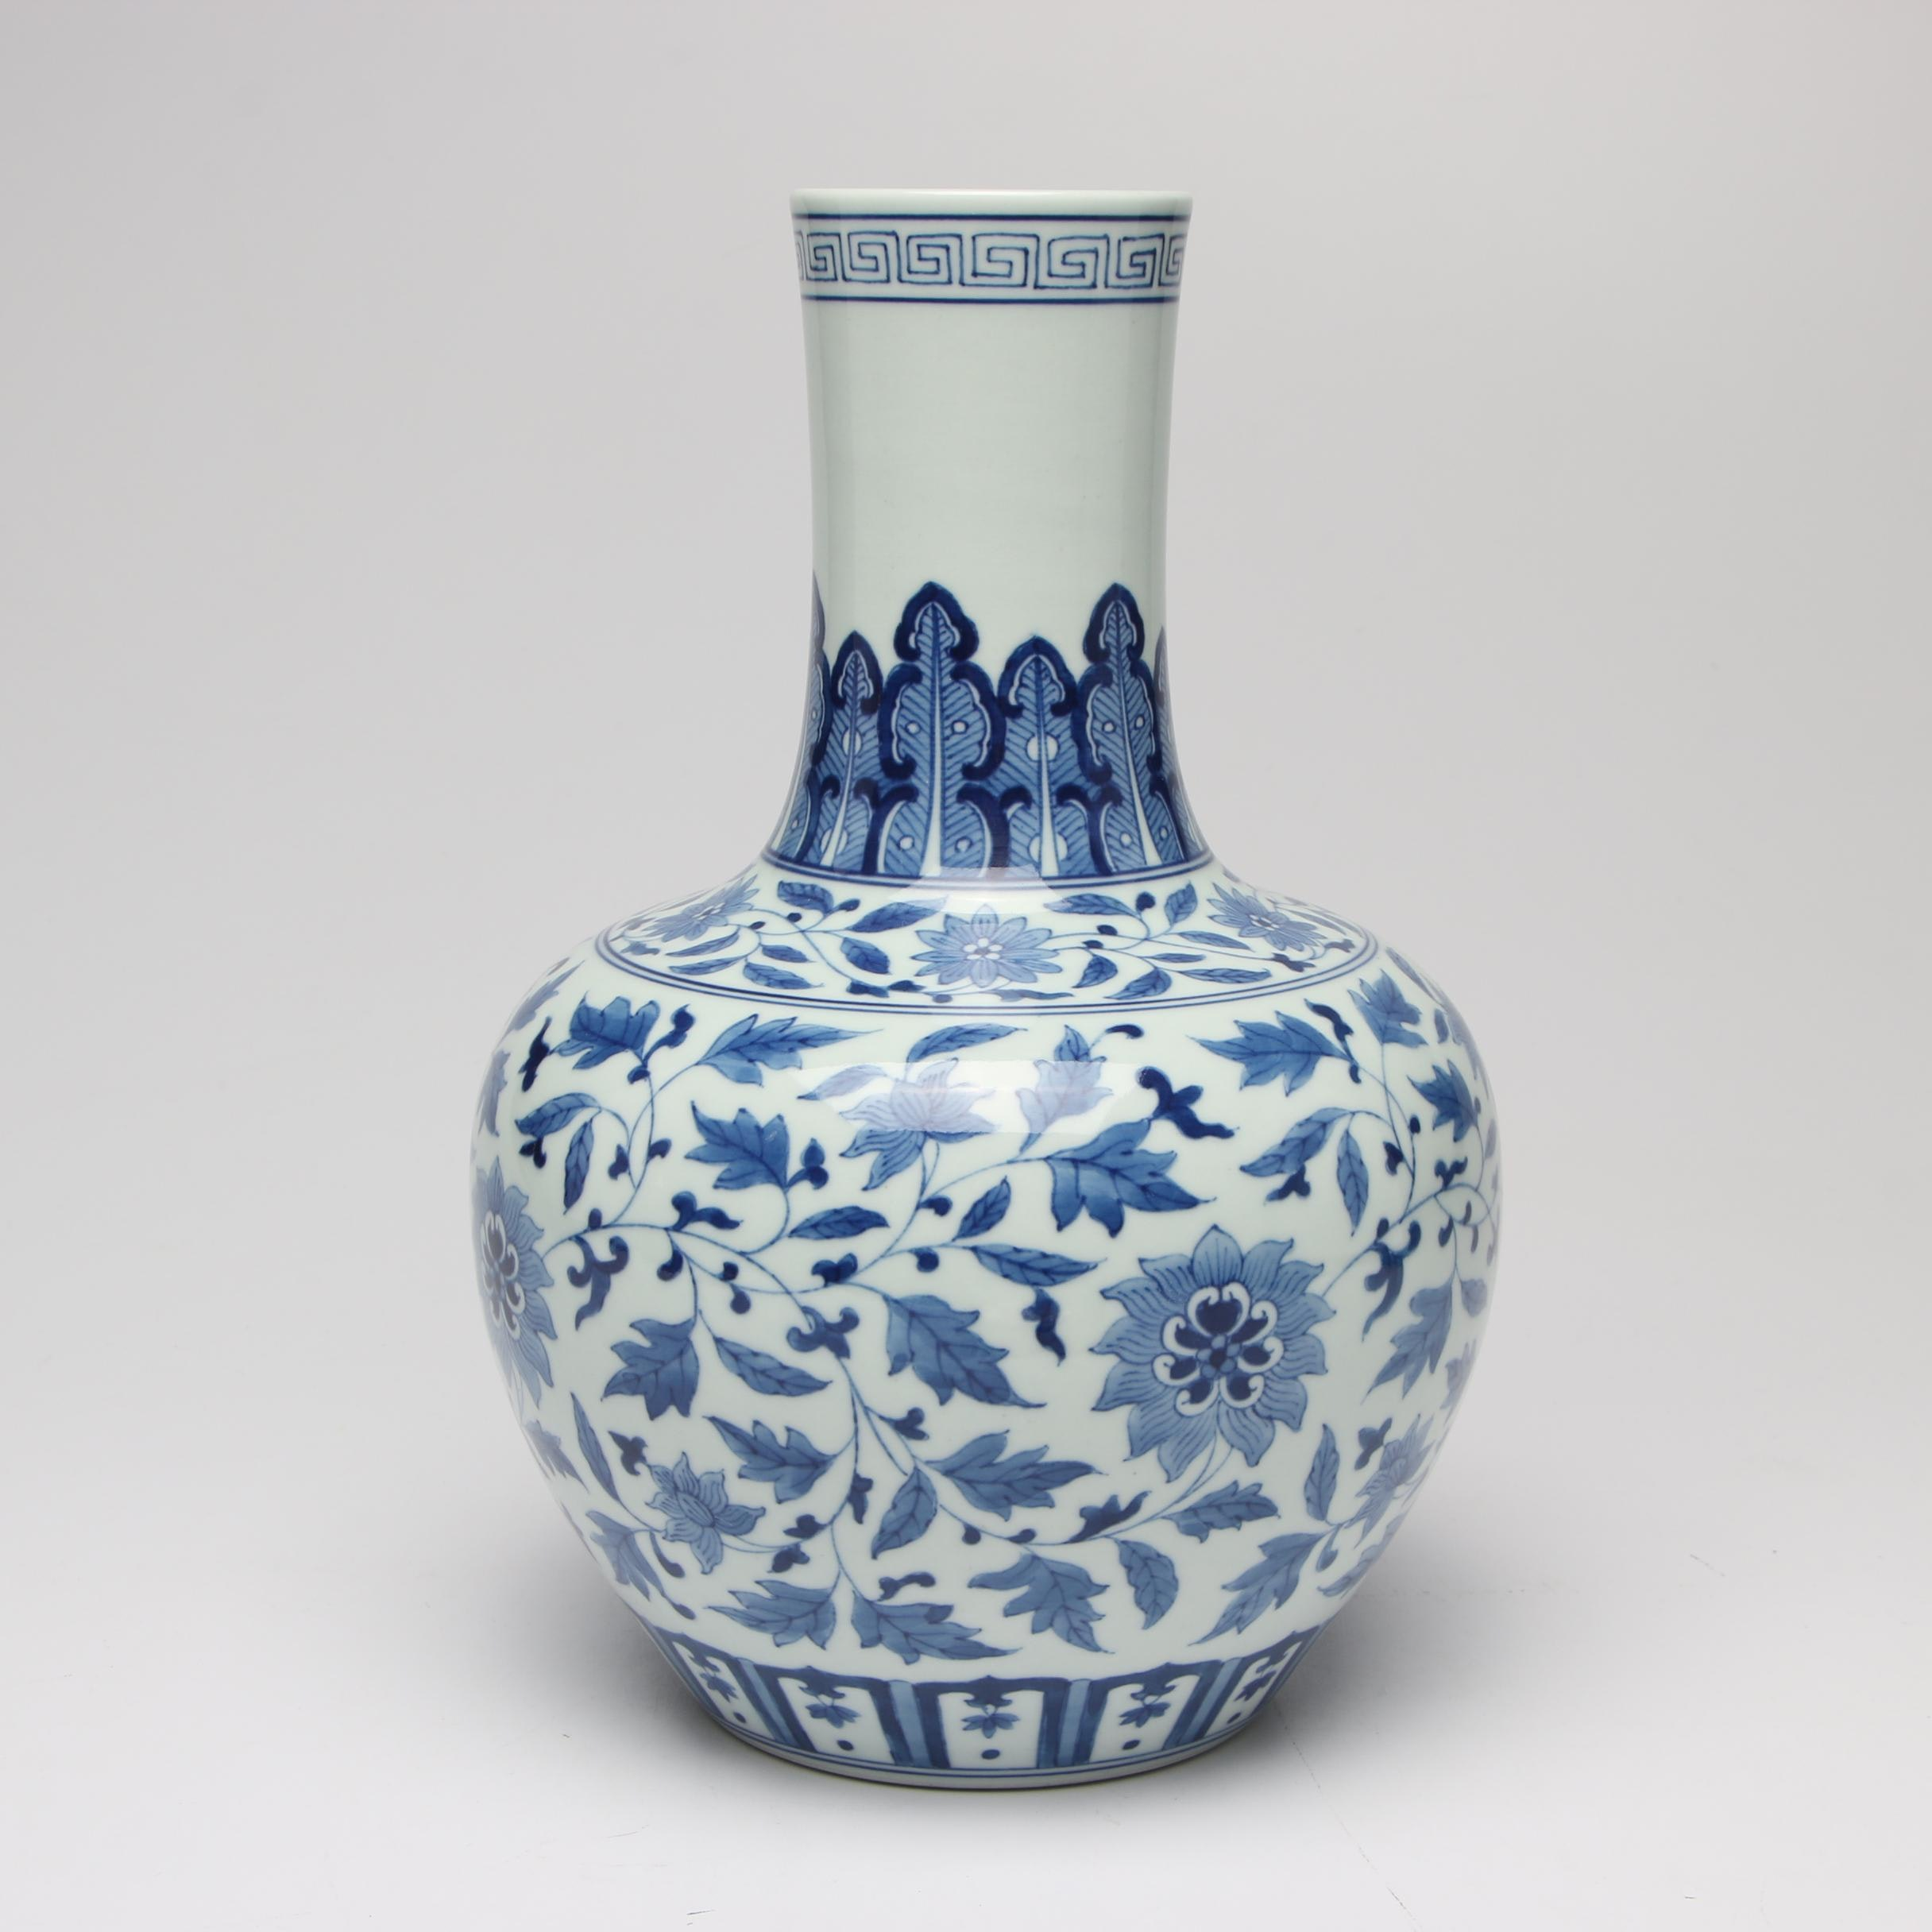 Chinese Porcelain Vase, Mid to Late 20th Century